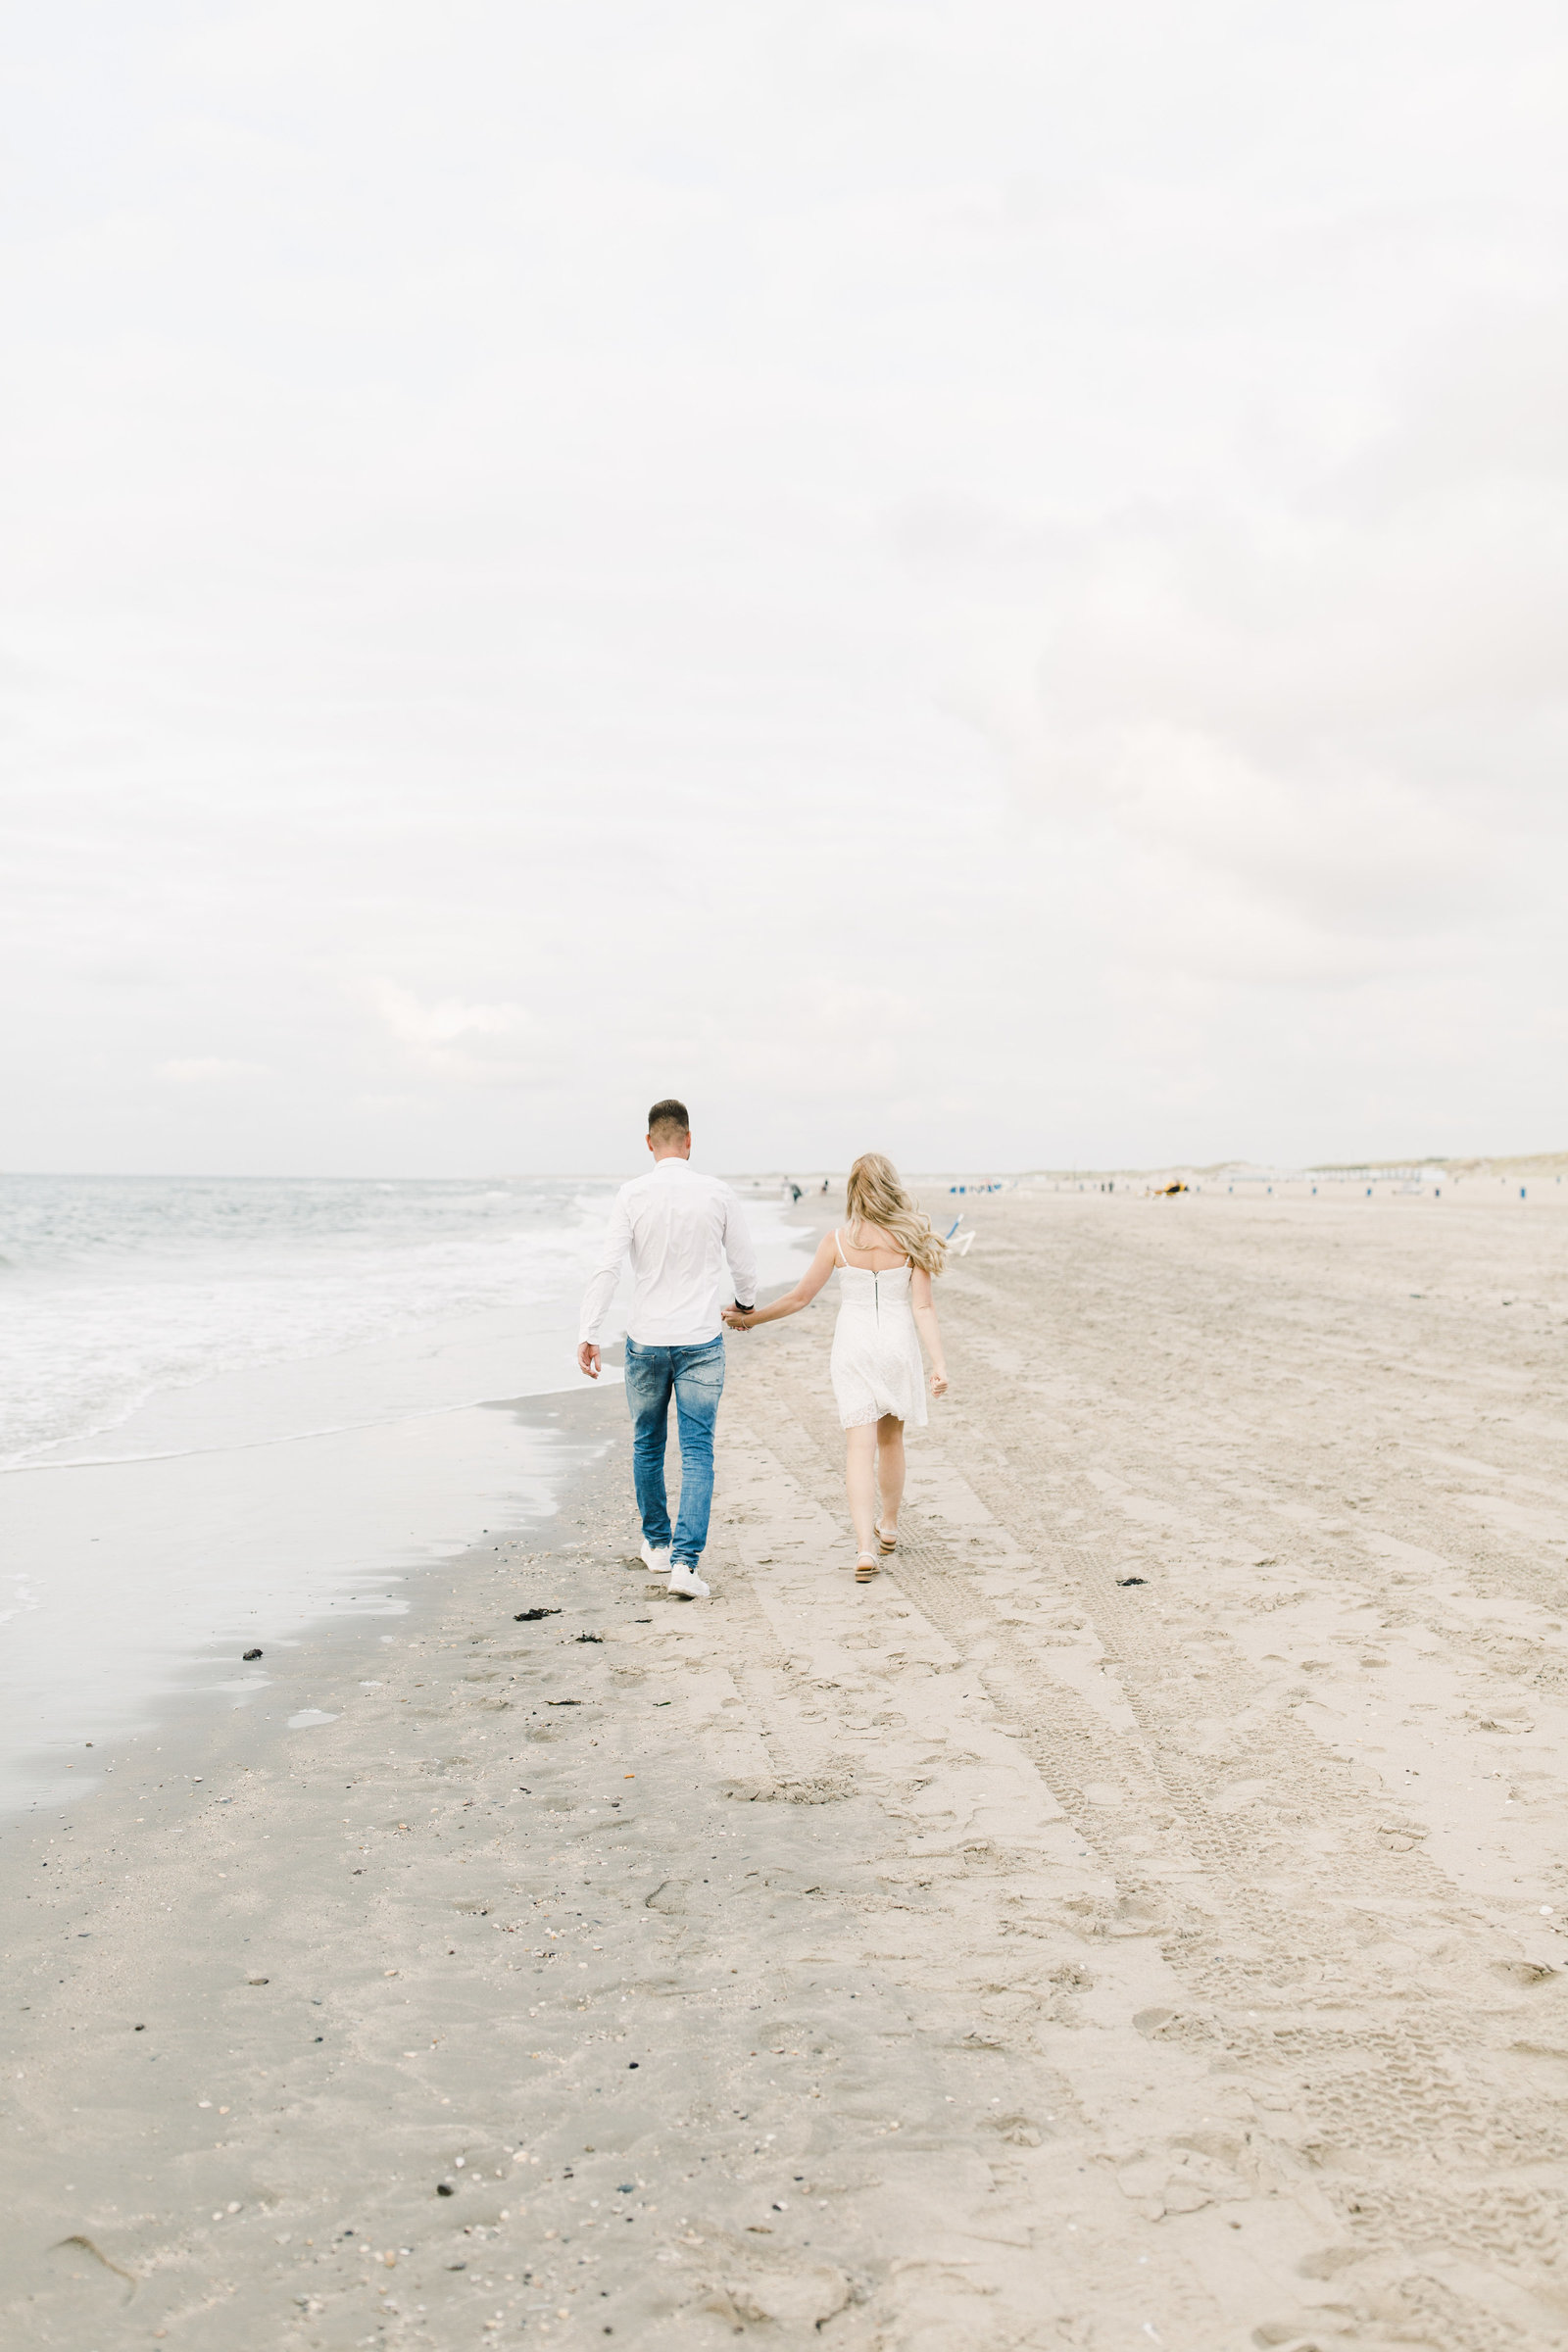 Shirley van der Schans - Shirley's Photography - loveshoot- strand-11